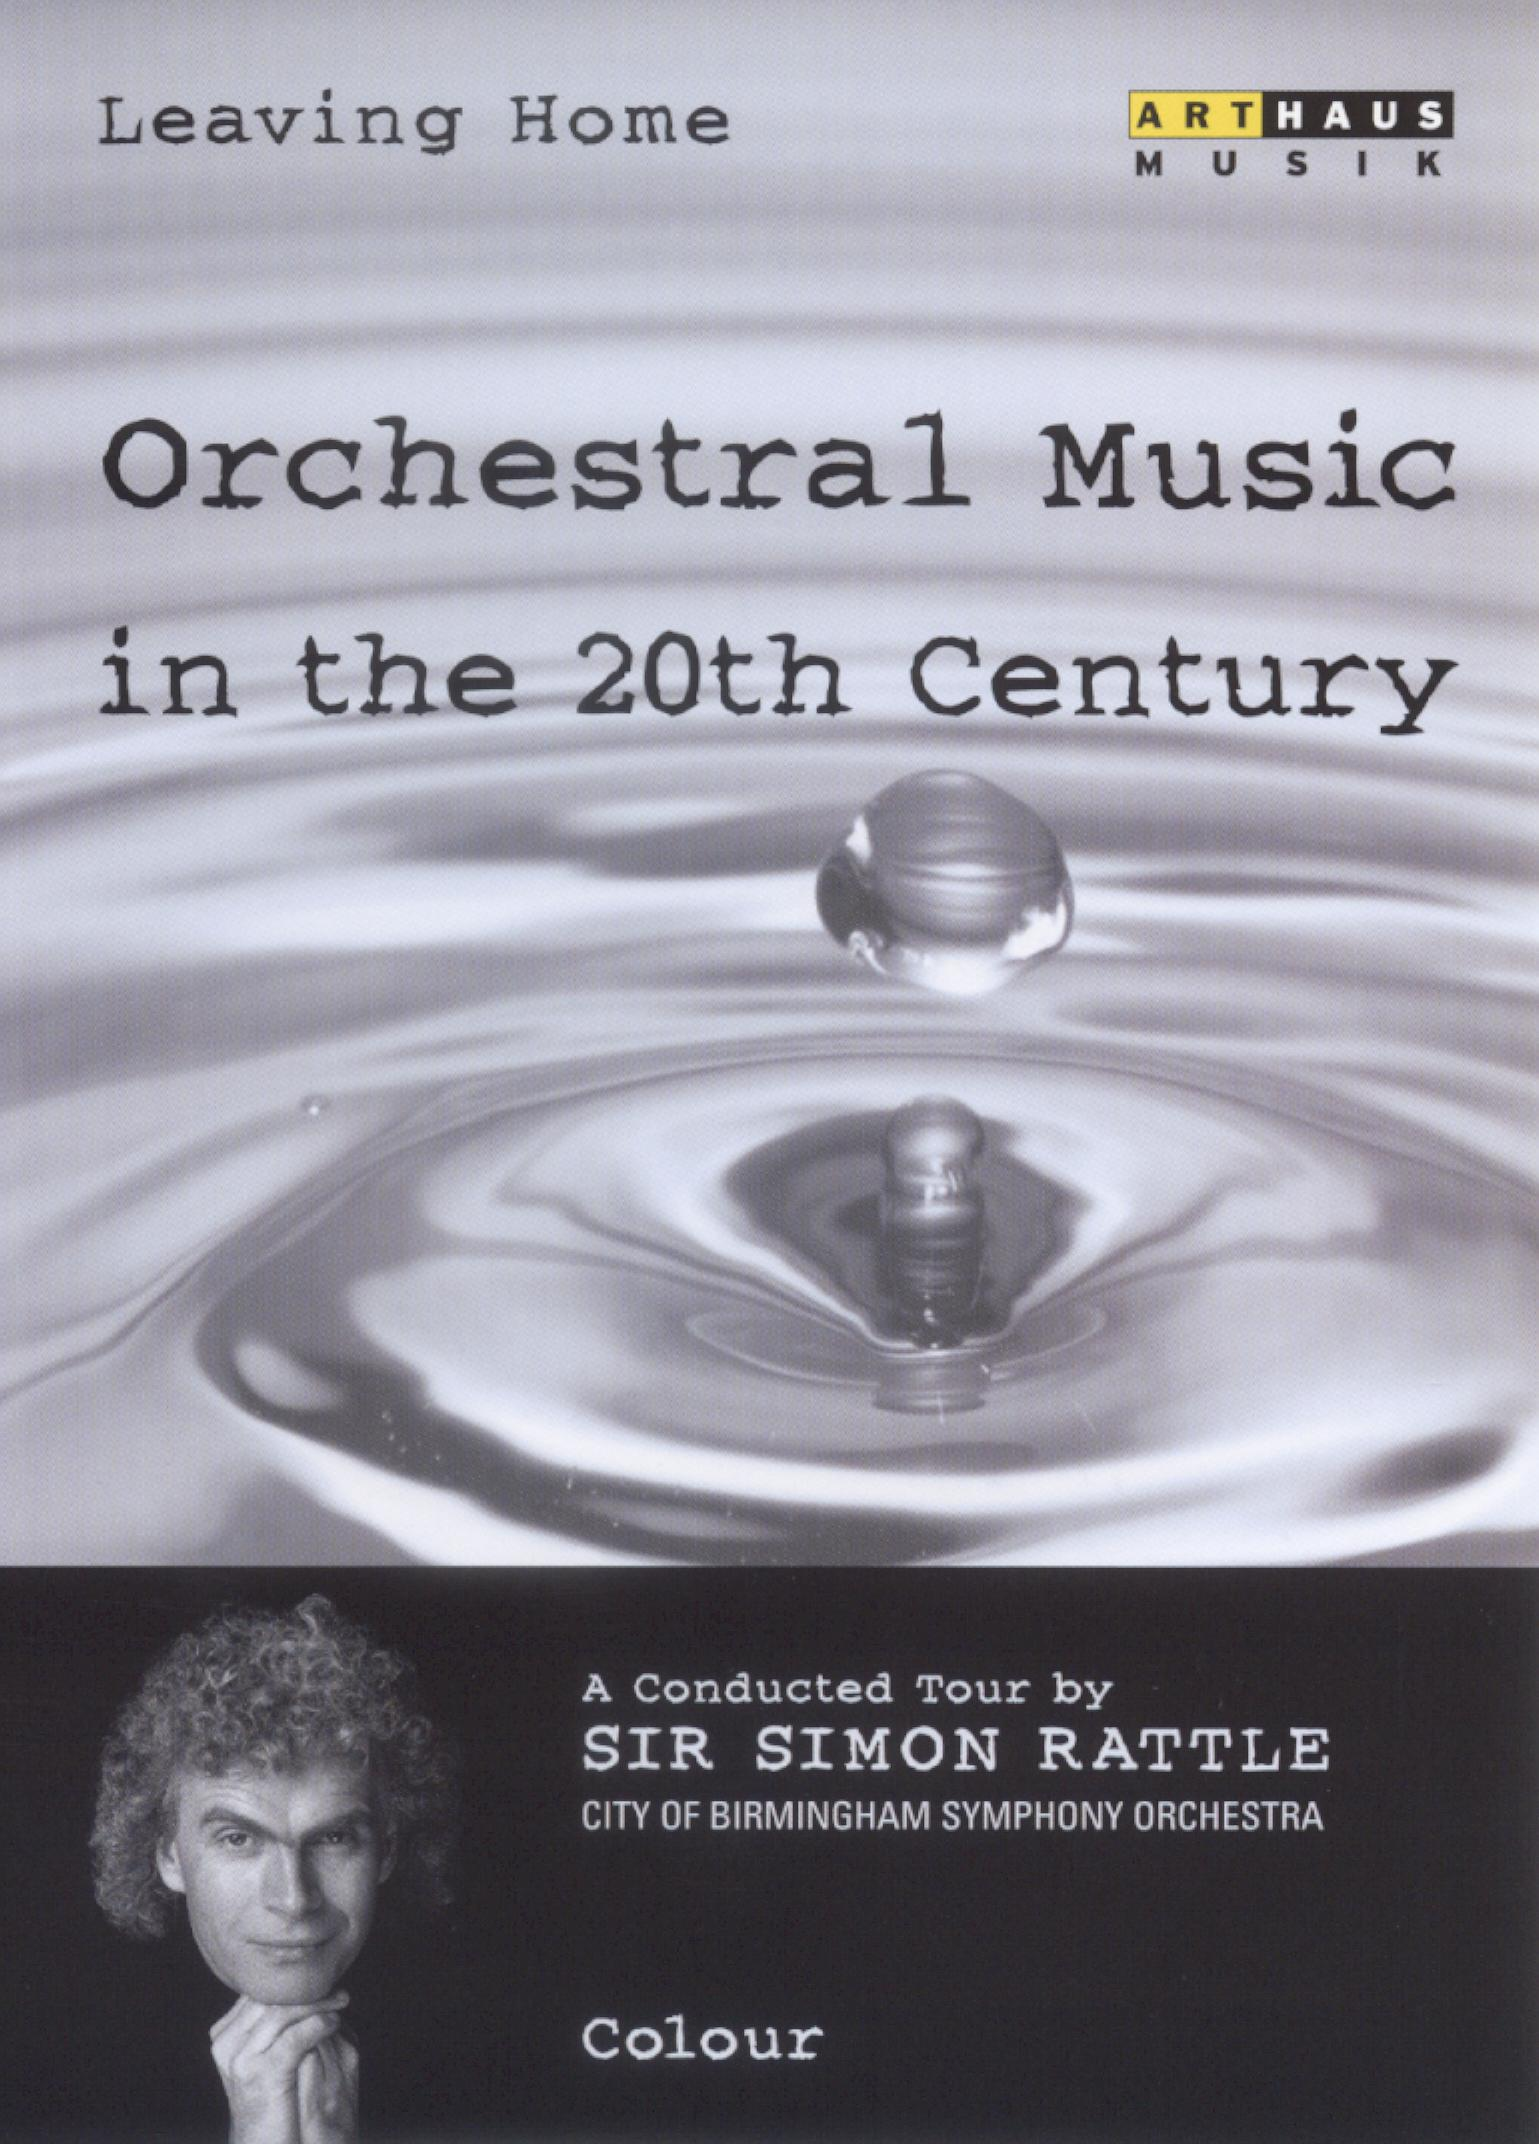 Leaving Home: Orchestral Music in the 20th Century - Colours